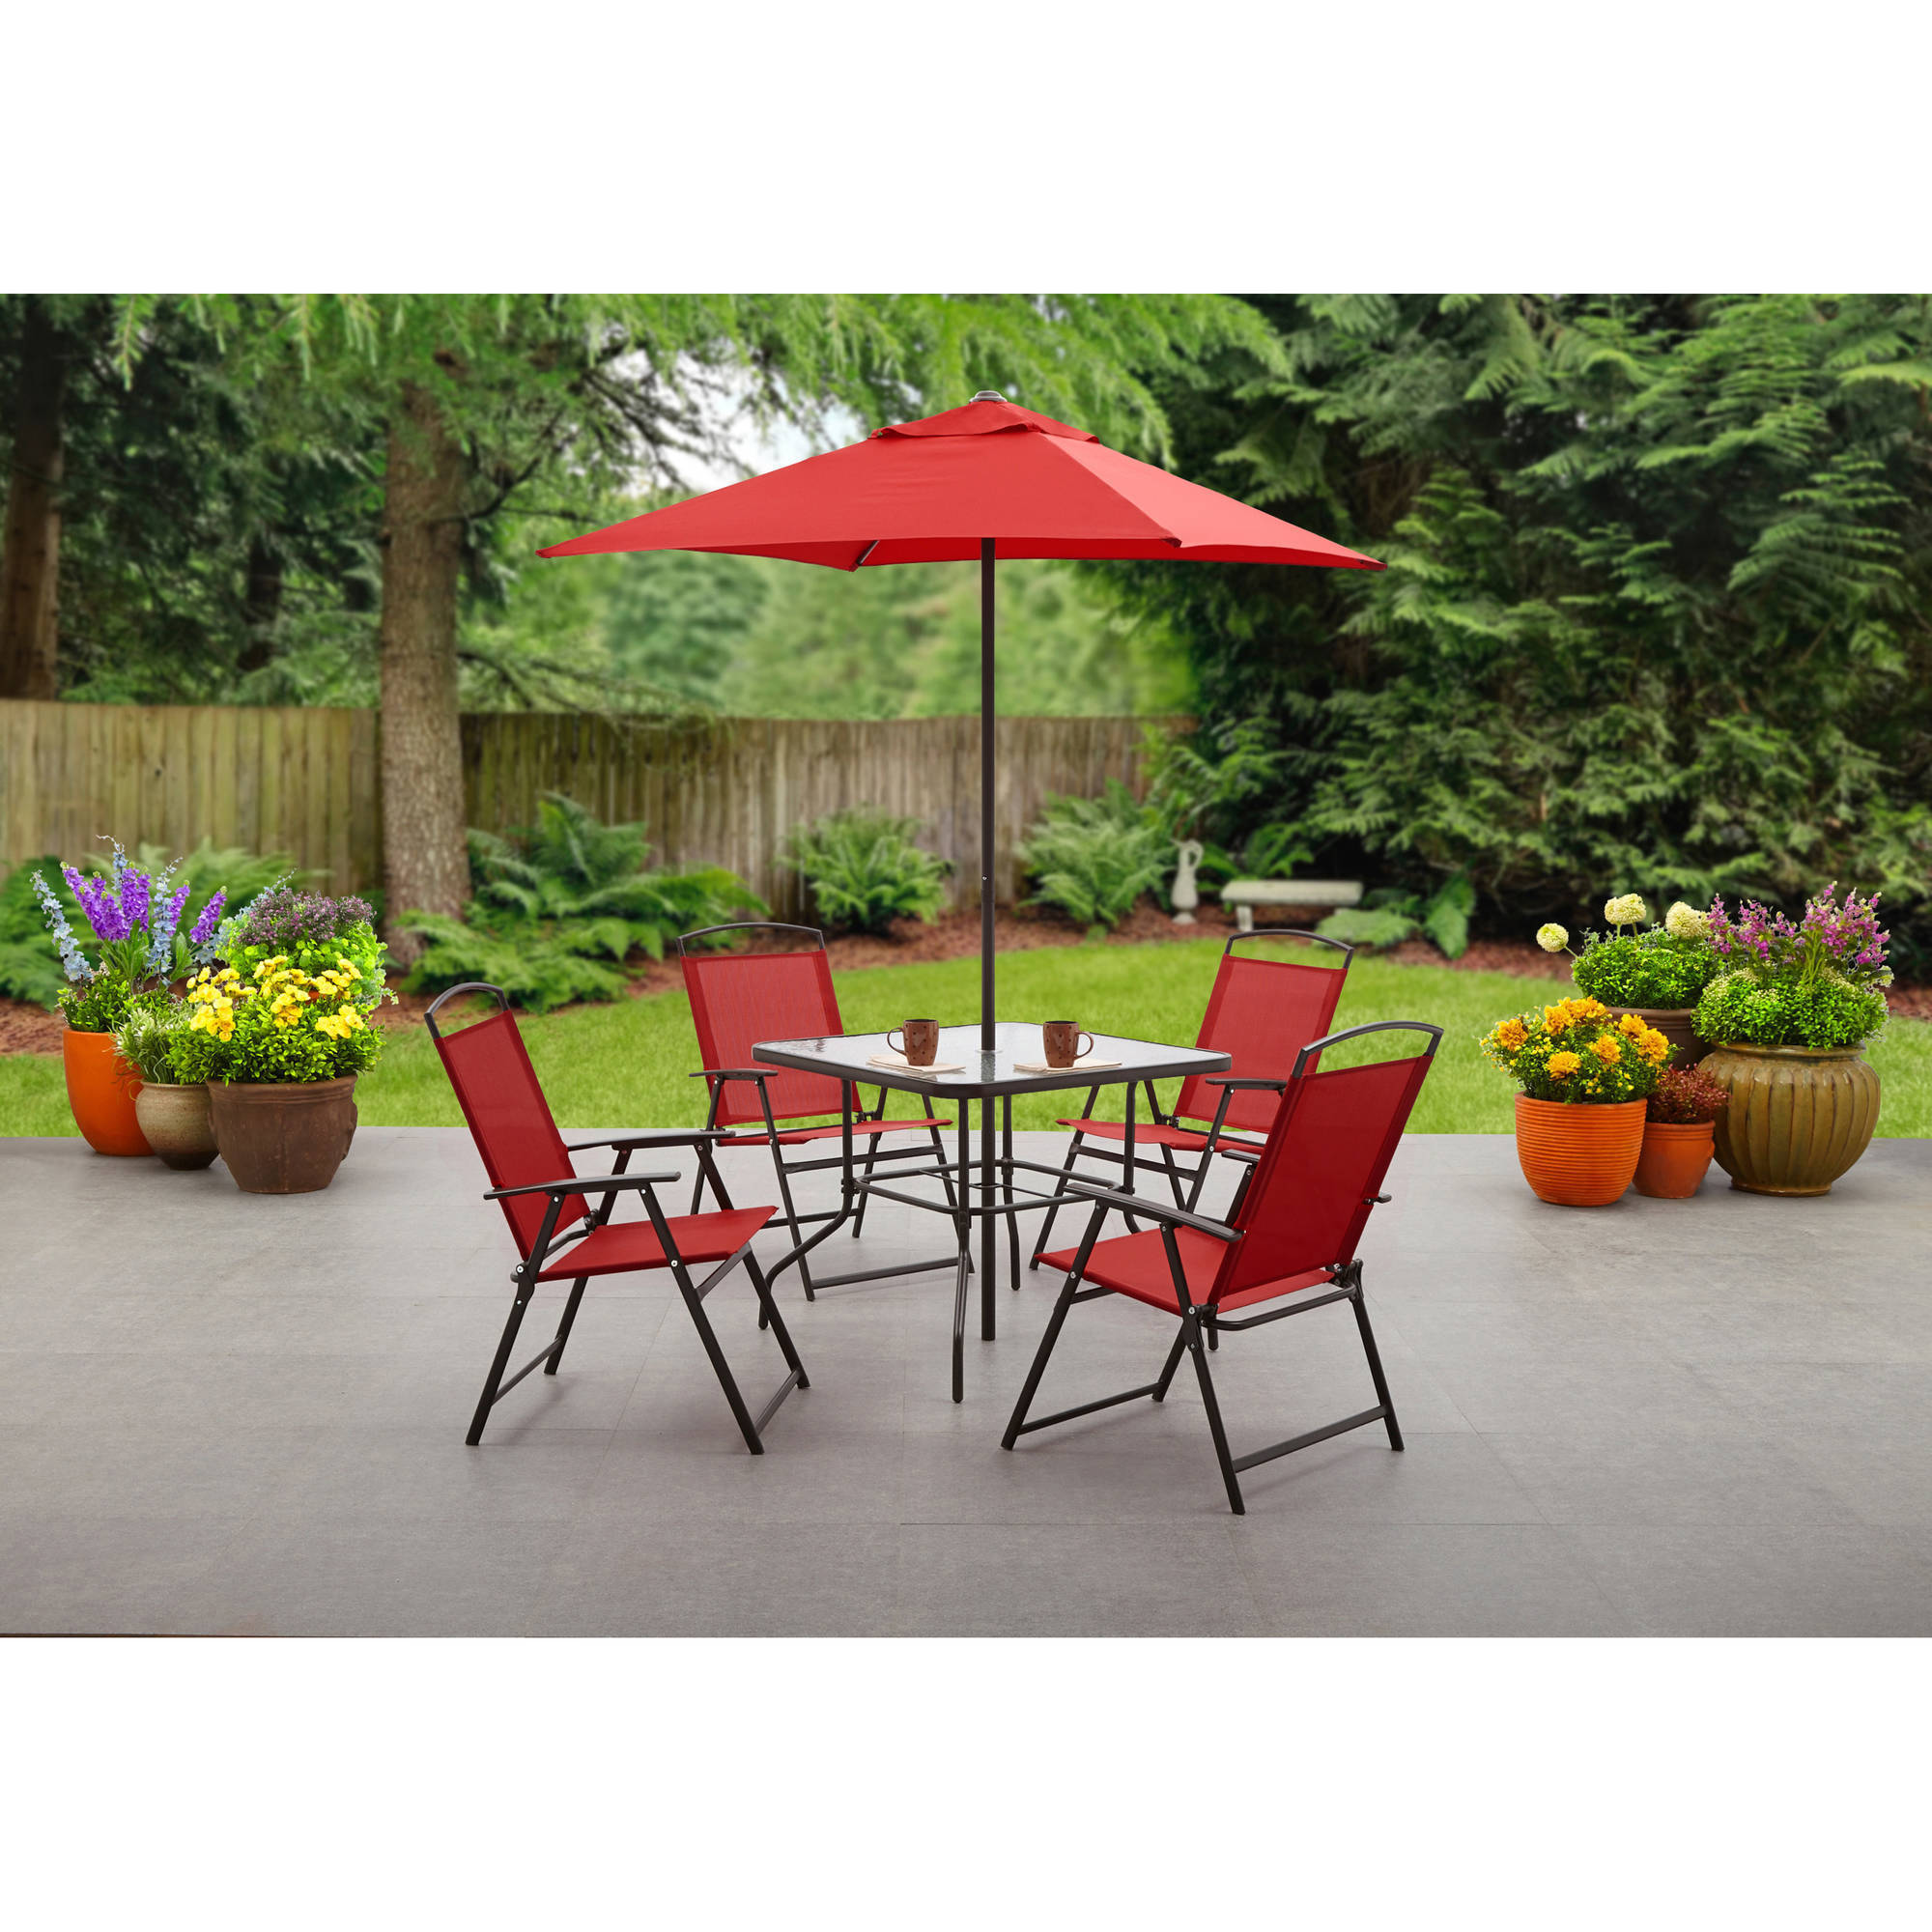 Mainstays Albany Lane 6-Piece Folding Dining Set Multiple Colors - Walmart.com  sc 1 st  Walmart & Mainstays Albany Lane 6-Piece Folding Dining Set Multiple Colors ...